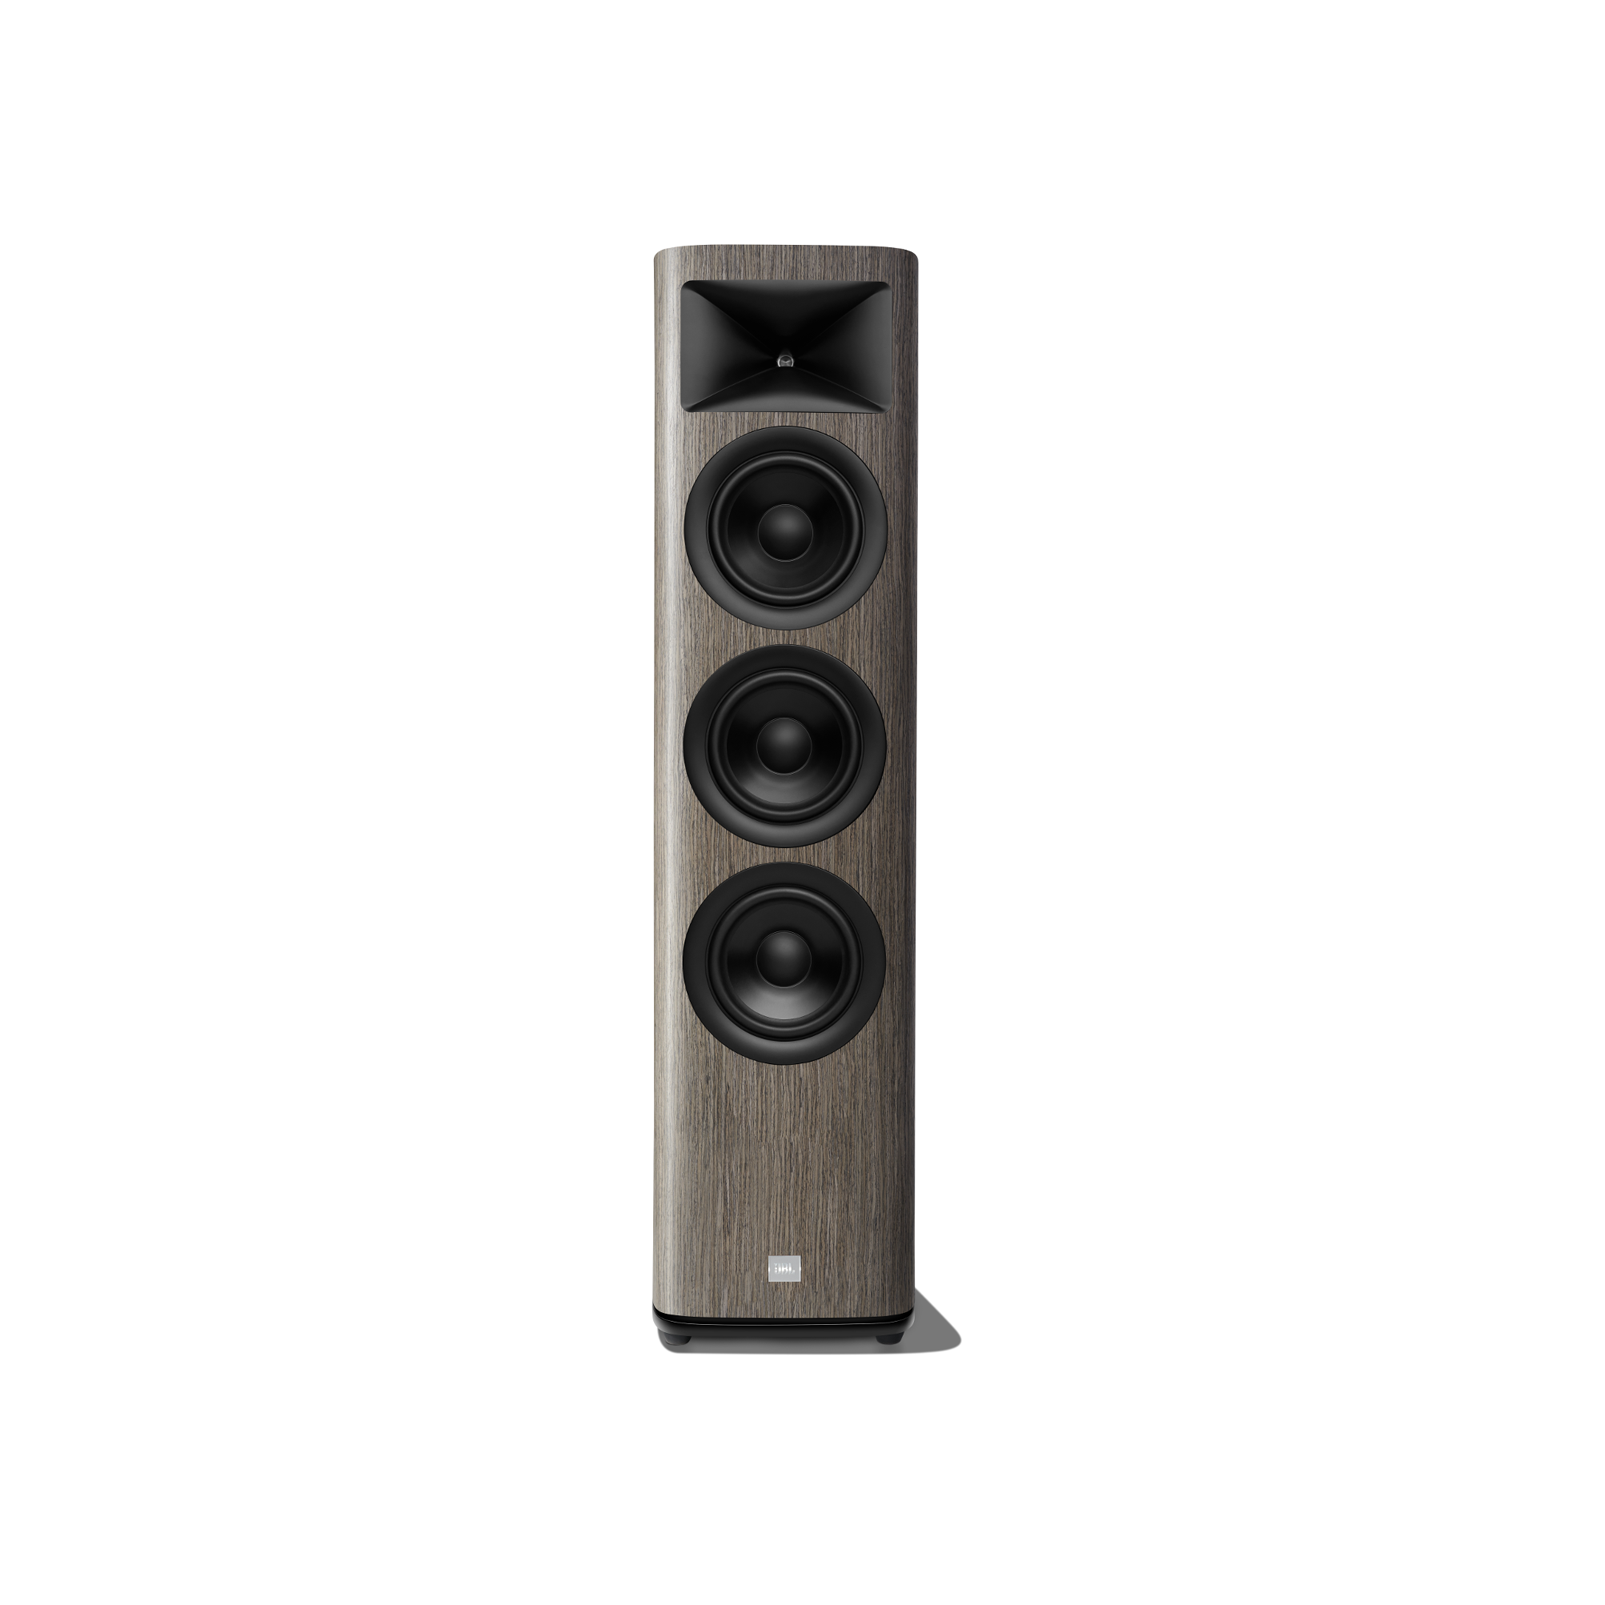 HDI-3600 - Grey Oak - 2 ½-way Triple 6.5-inch (165mm) Floorstanding Loudspeaker - Hero